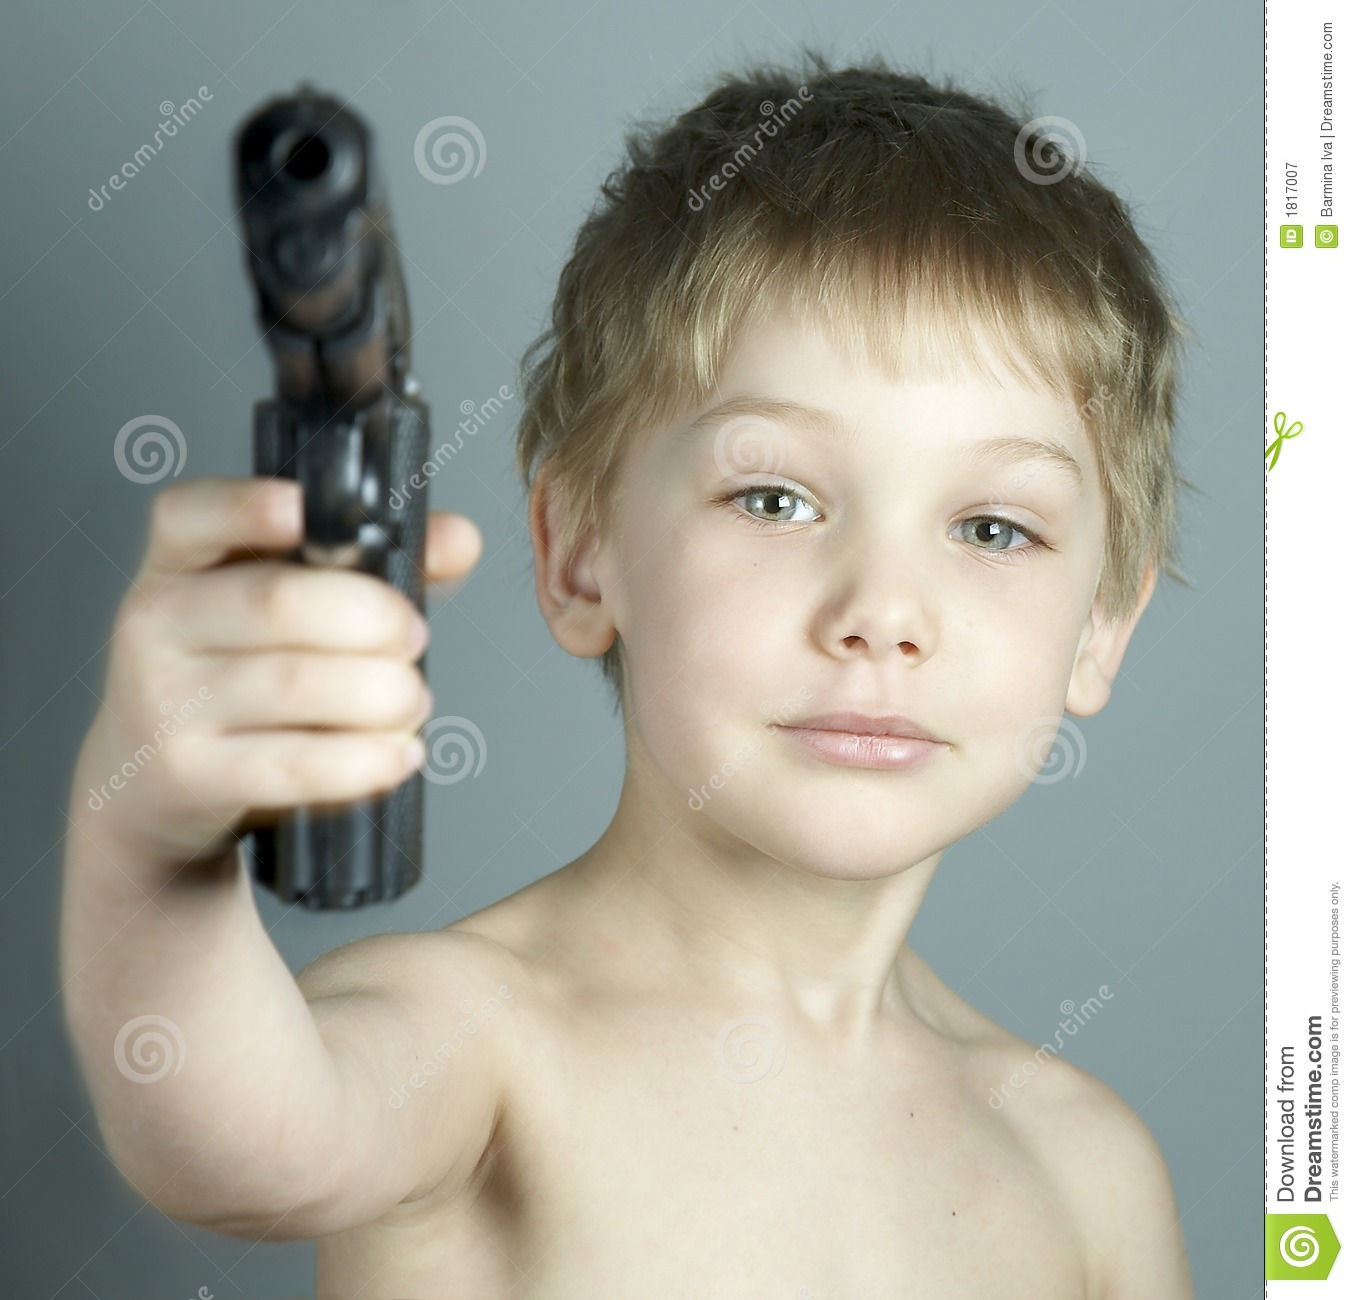 Boy and gun stock image  Image of arming, child, agressive